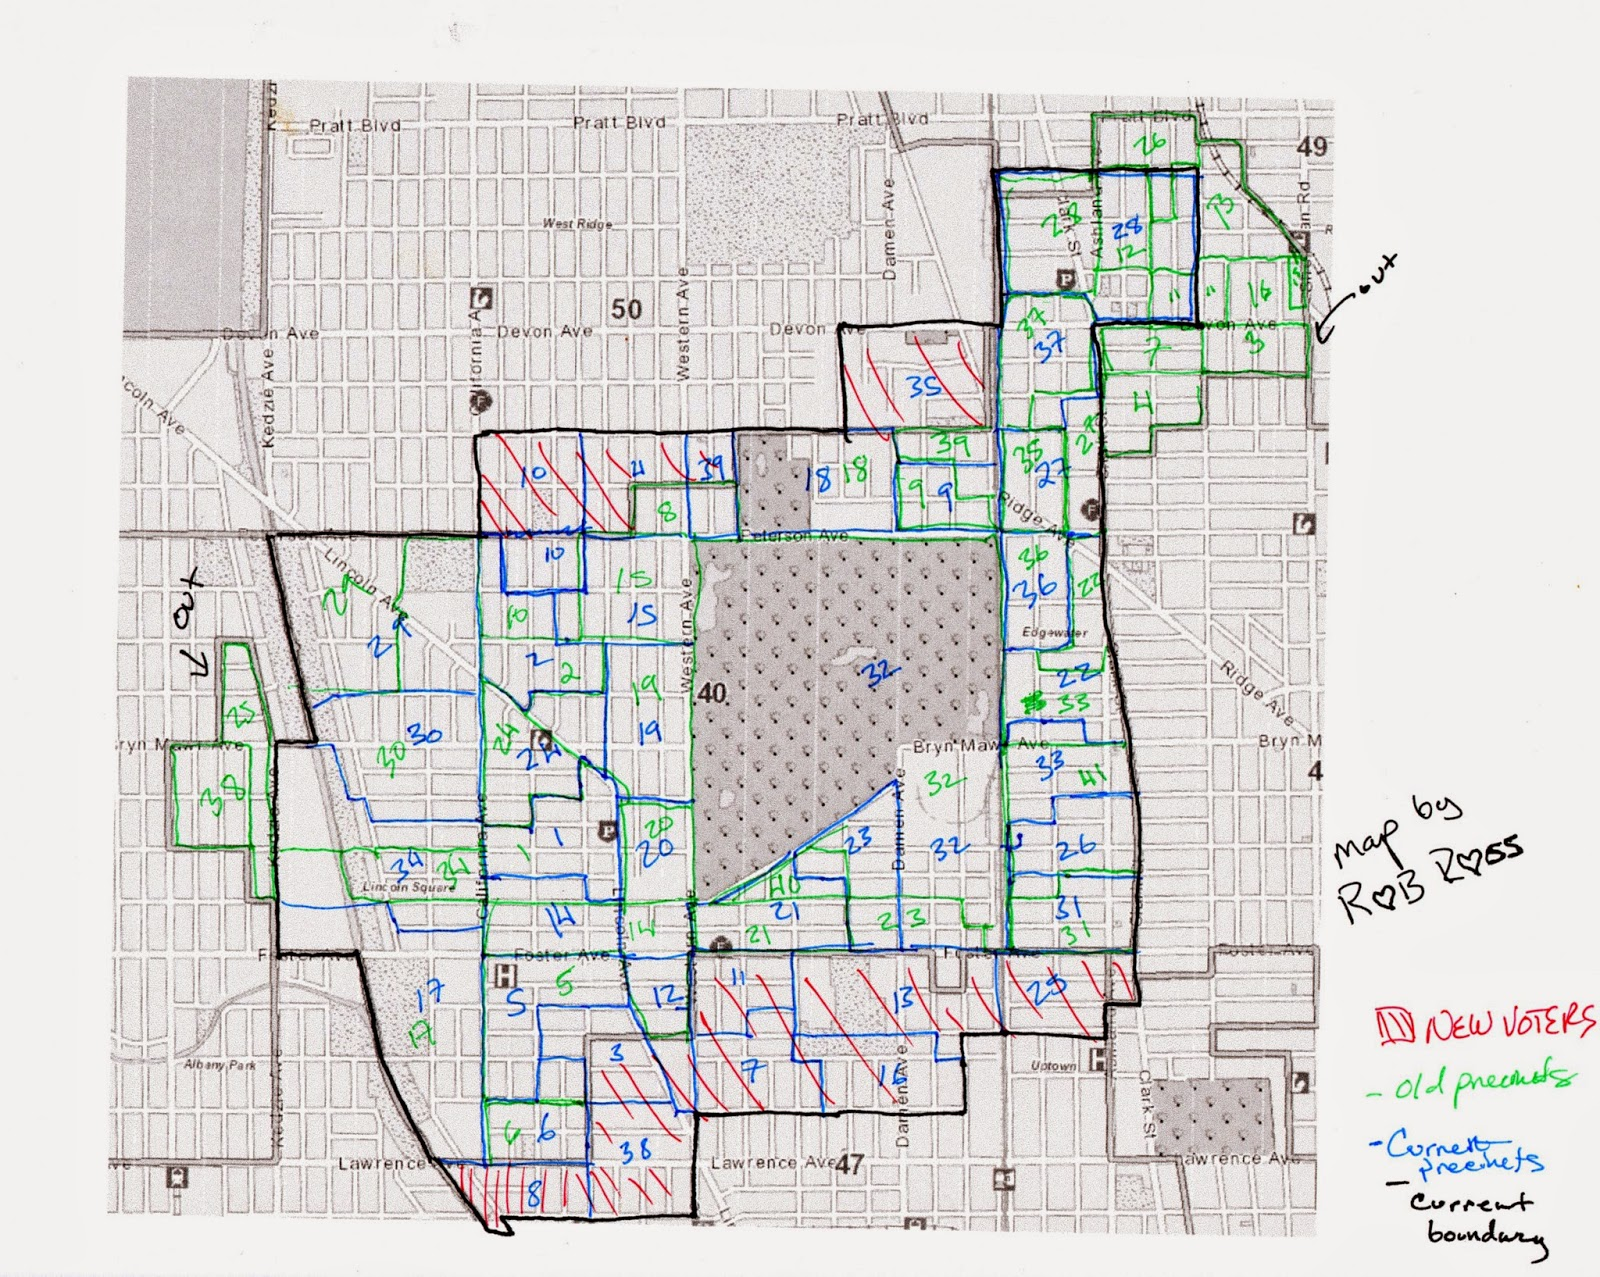 basically i allocated the old precincts to the new ones based on land area i know that s not scientific because voters are not distributed evenly within